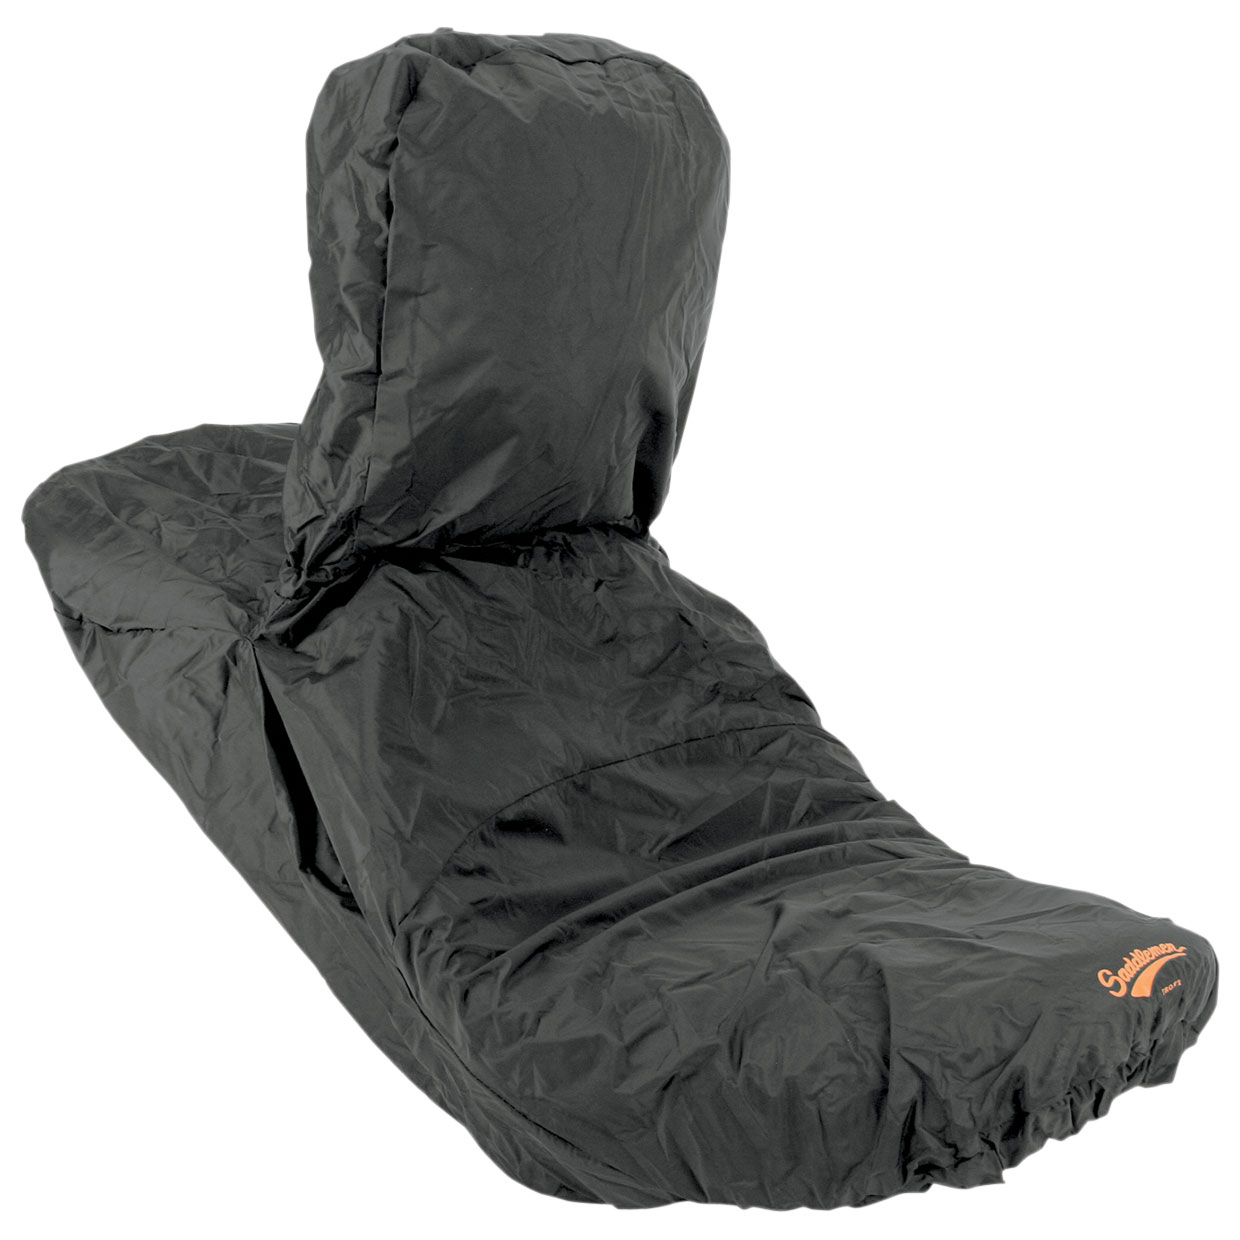 Saddlemen Touring Seat with Backrest Rain Cover